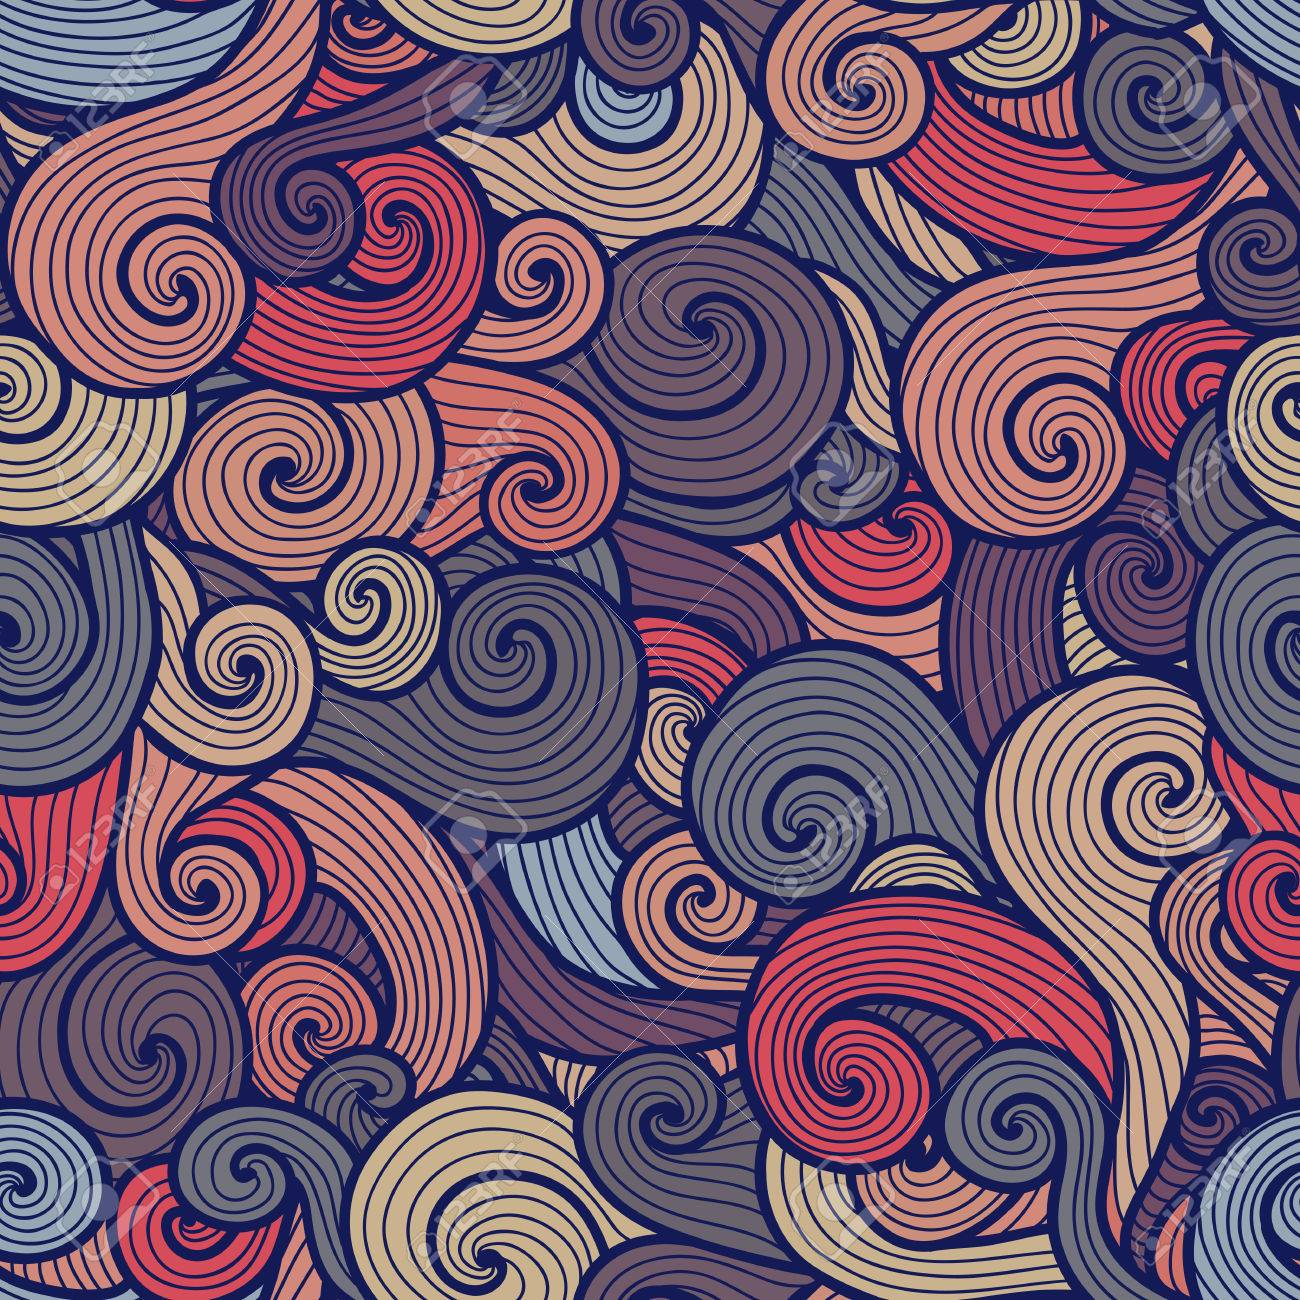 seamless curly pattern with spiral waves of different colors royalty free cliparts vectors and stock illustration image 34910727 seamless curly pattern with spiral waves of different colors